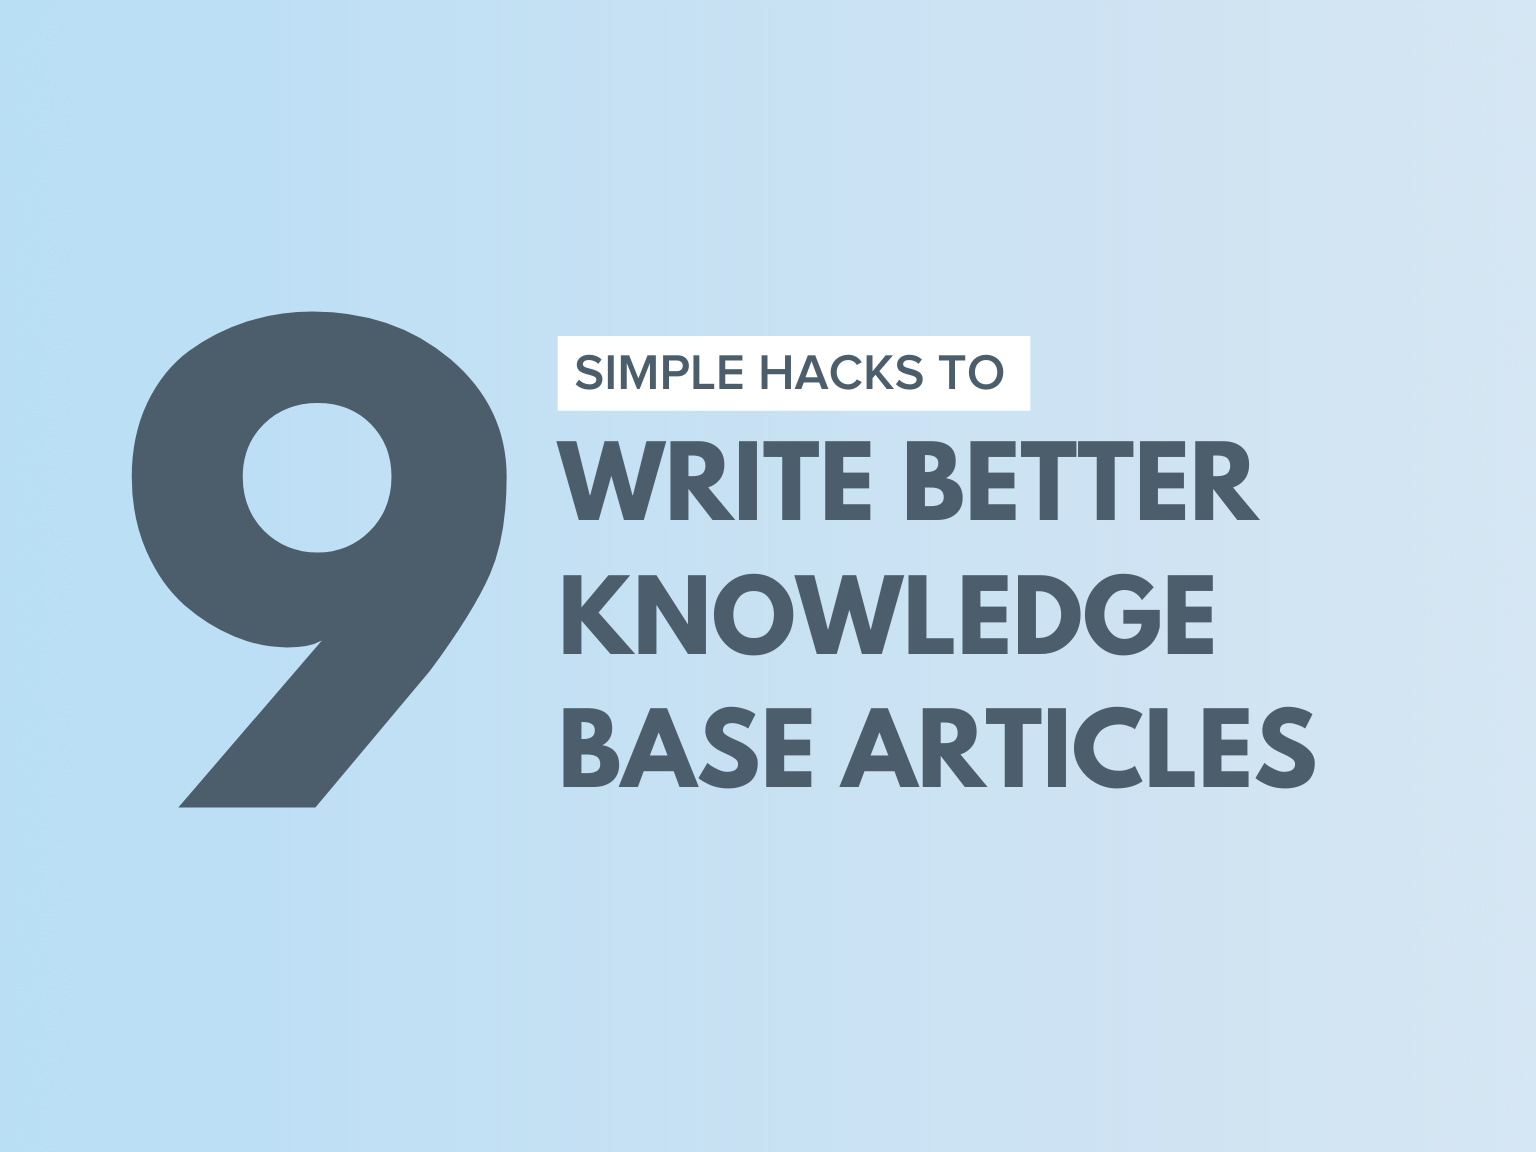 tips to write knowledge base articles